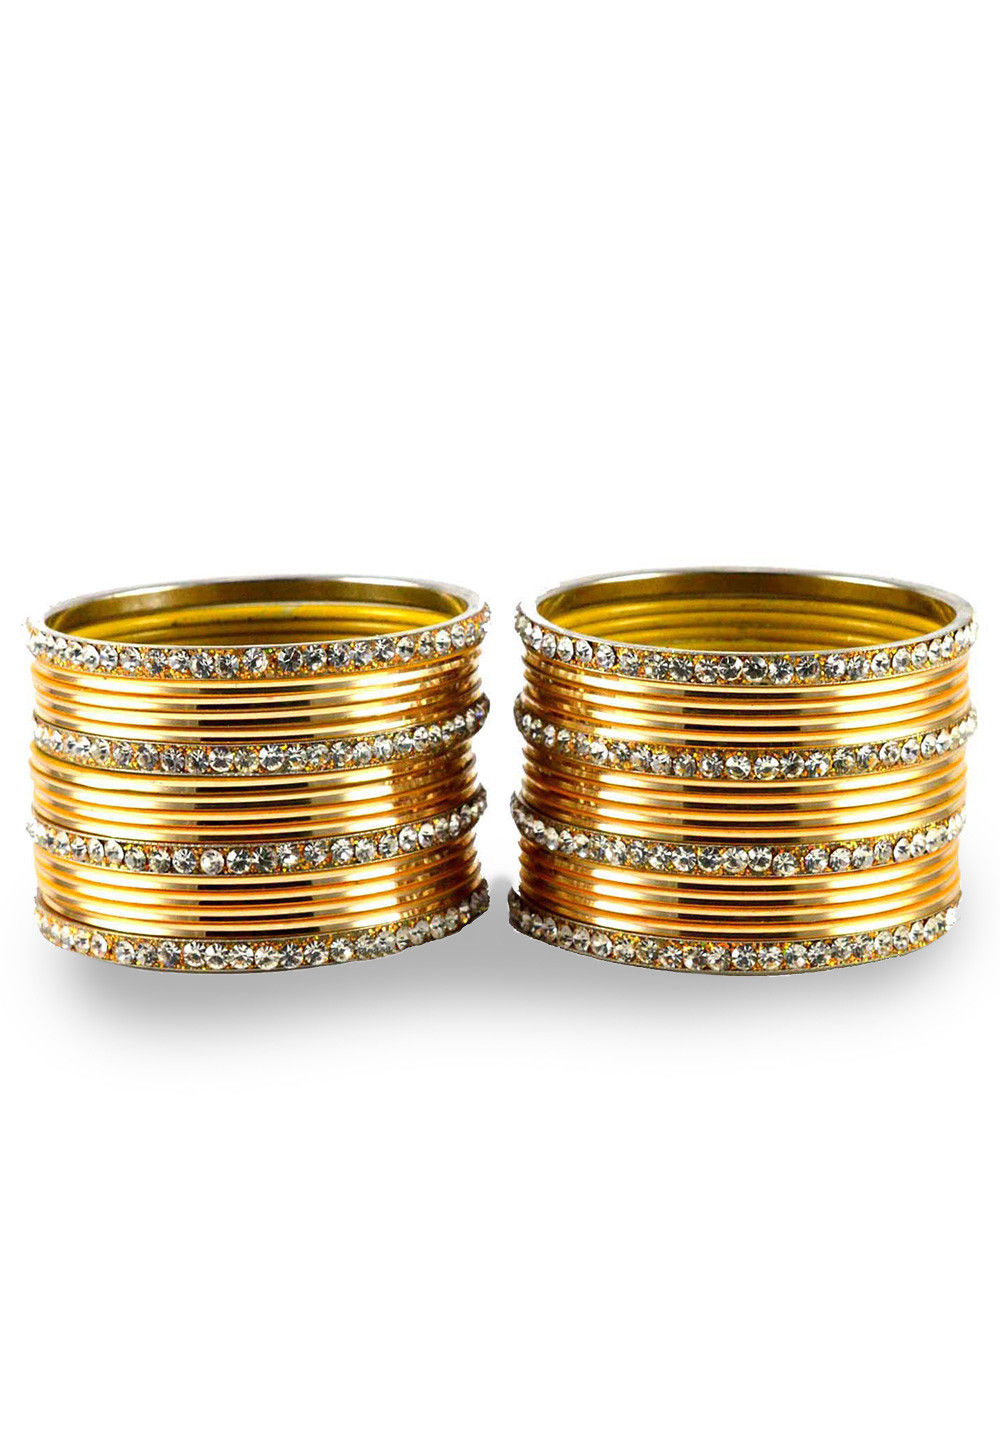 Stone Studded Bangle Set in Golden and White